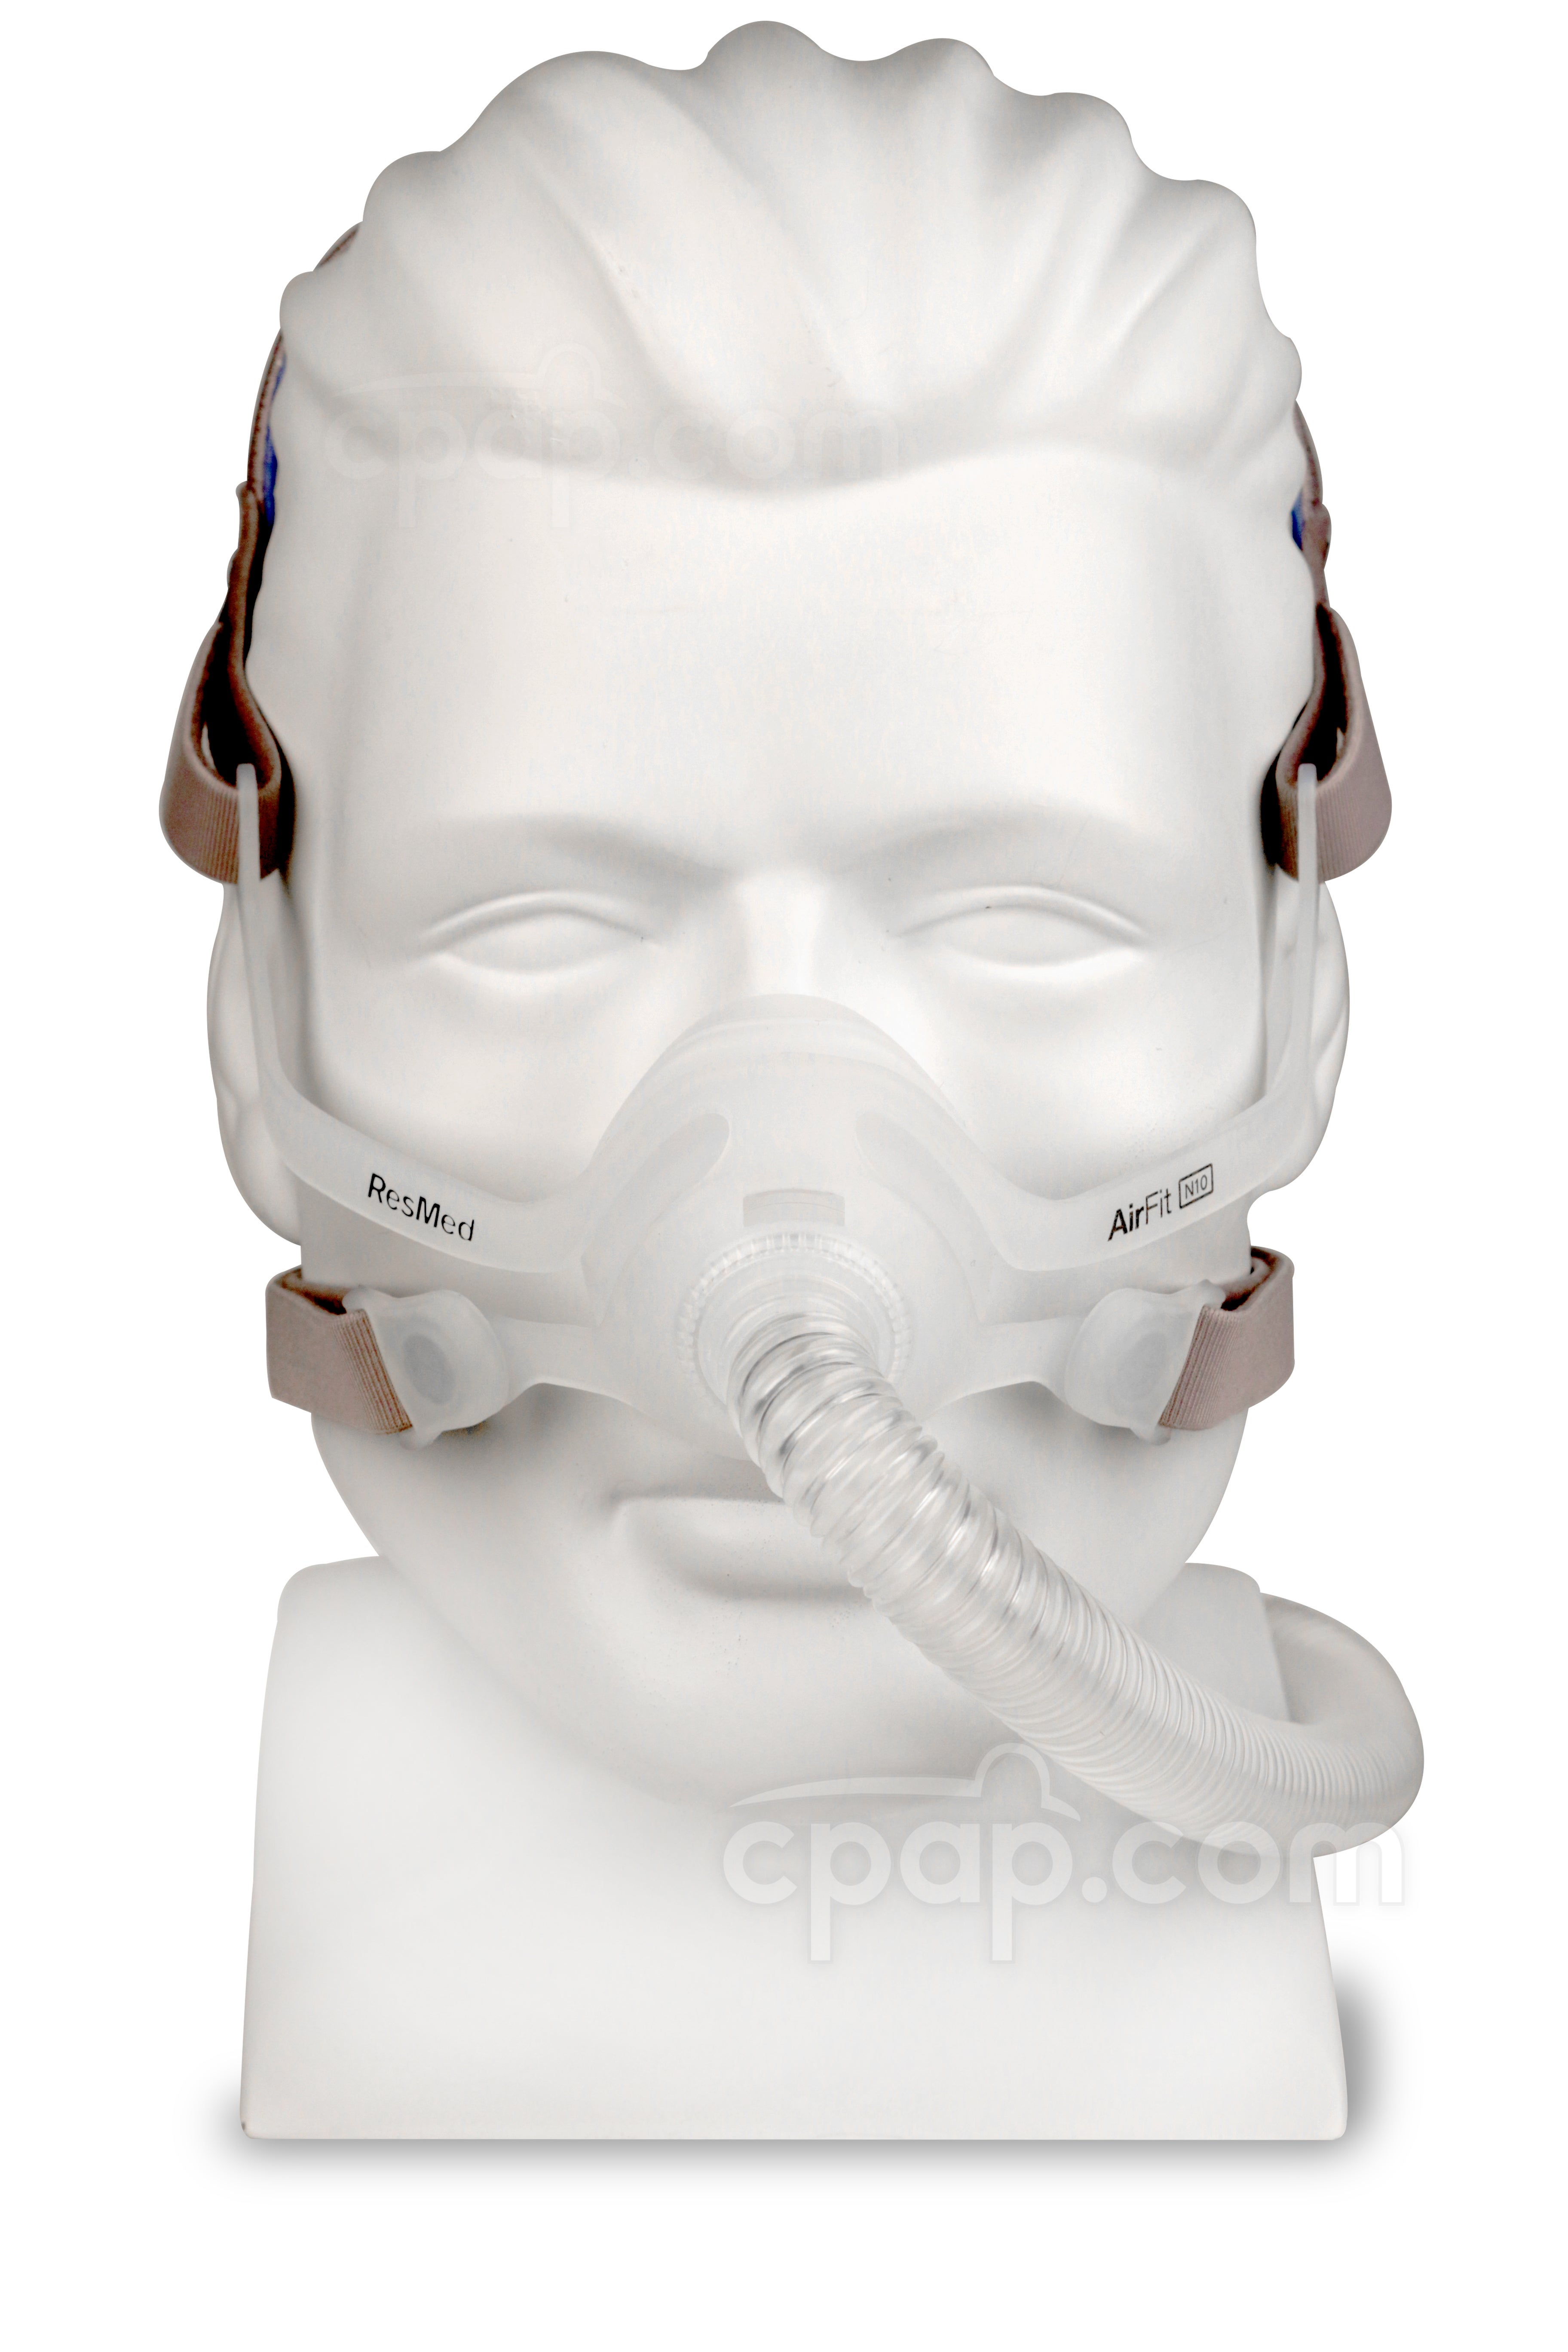 AirFit™ N10 Nasal CPAP Mask with Headgear - Front (Mannequin Not Included)